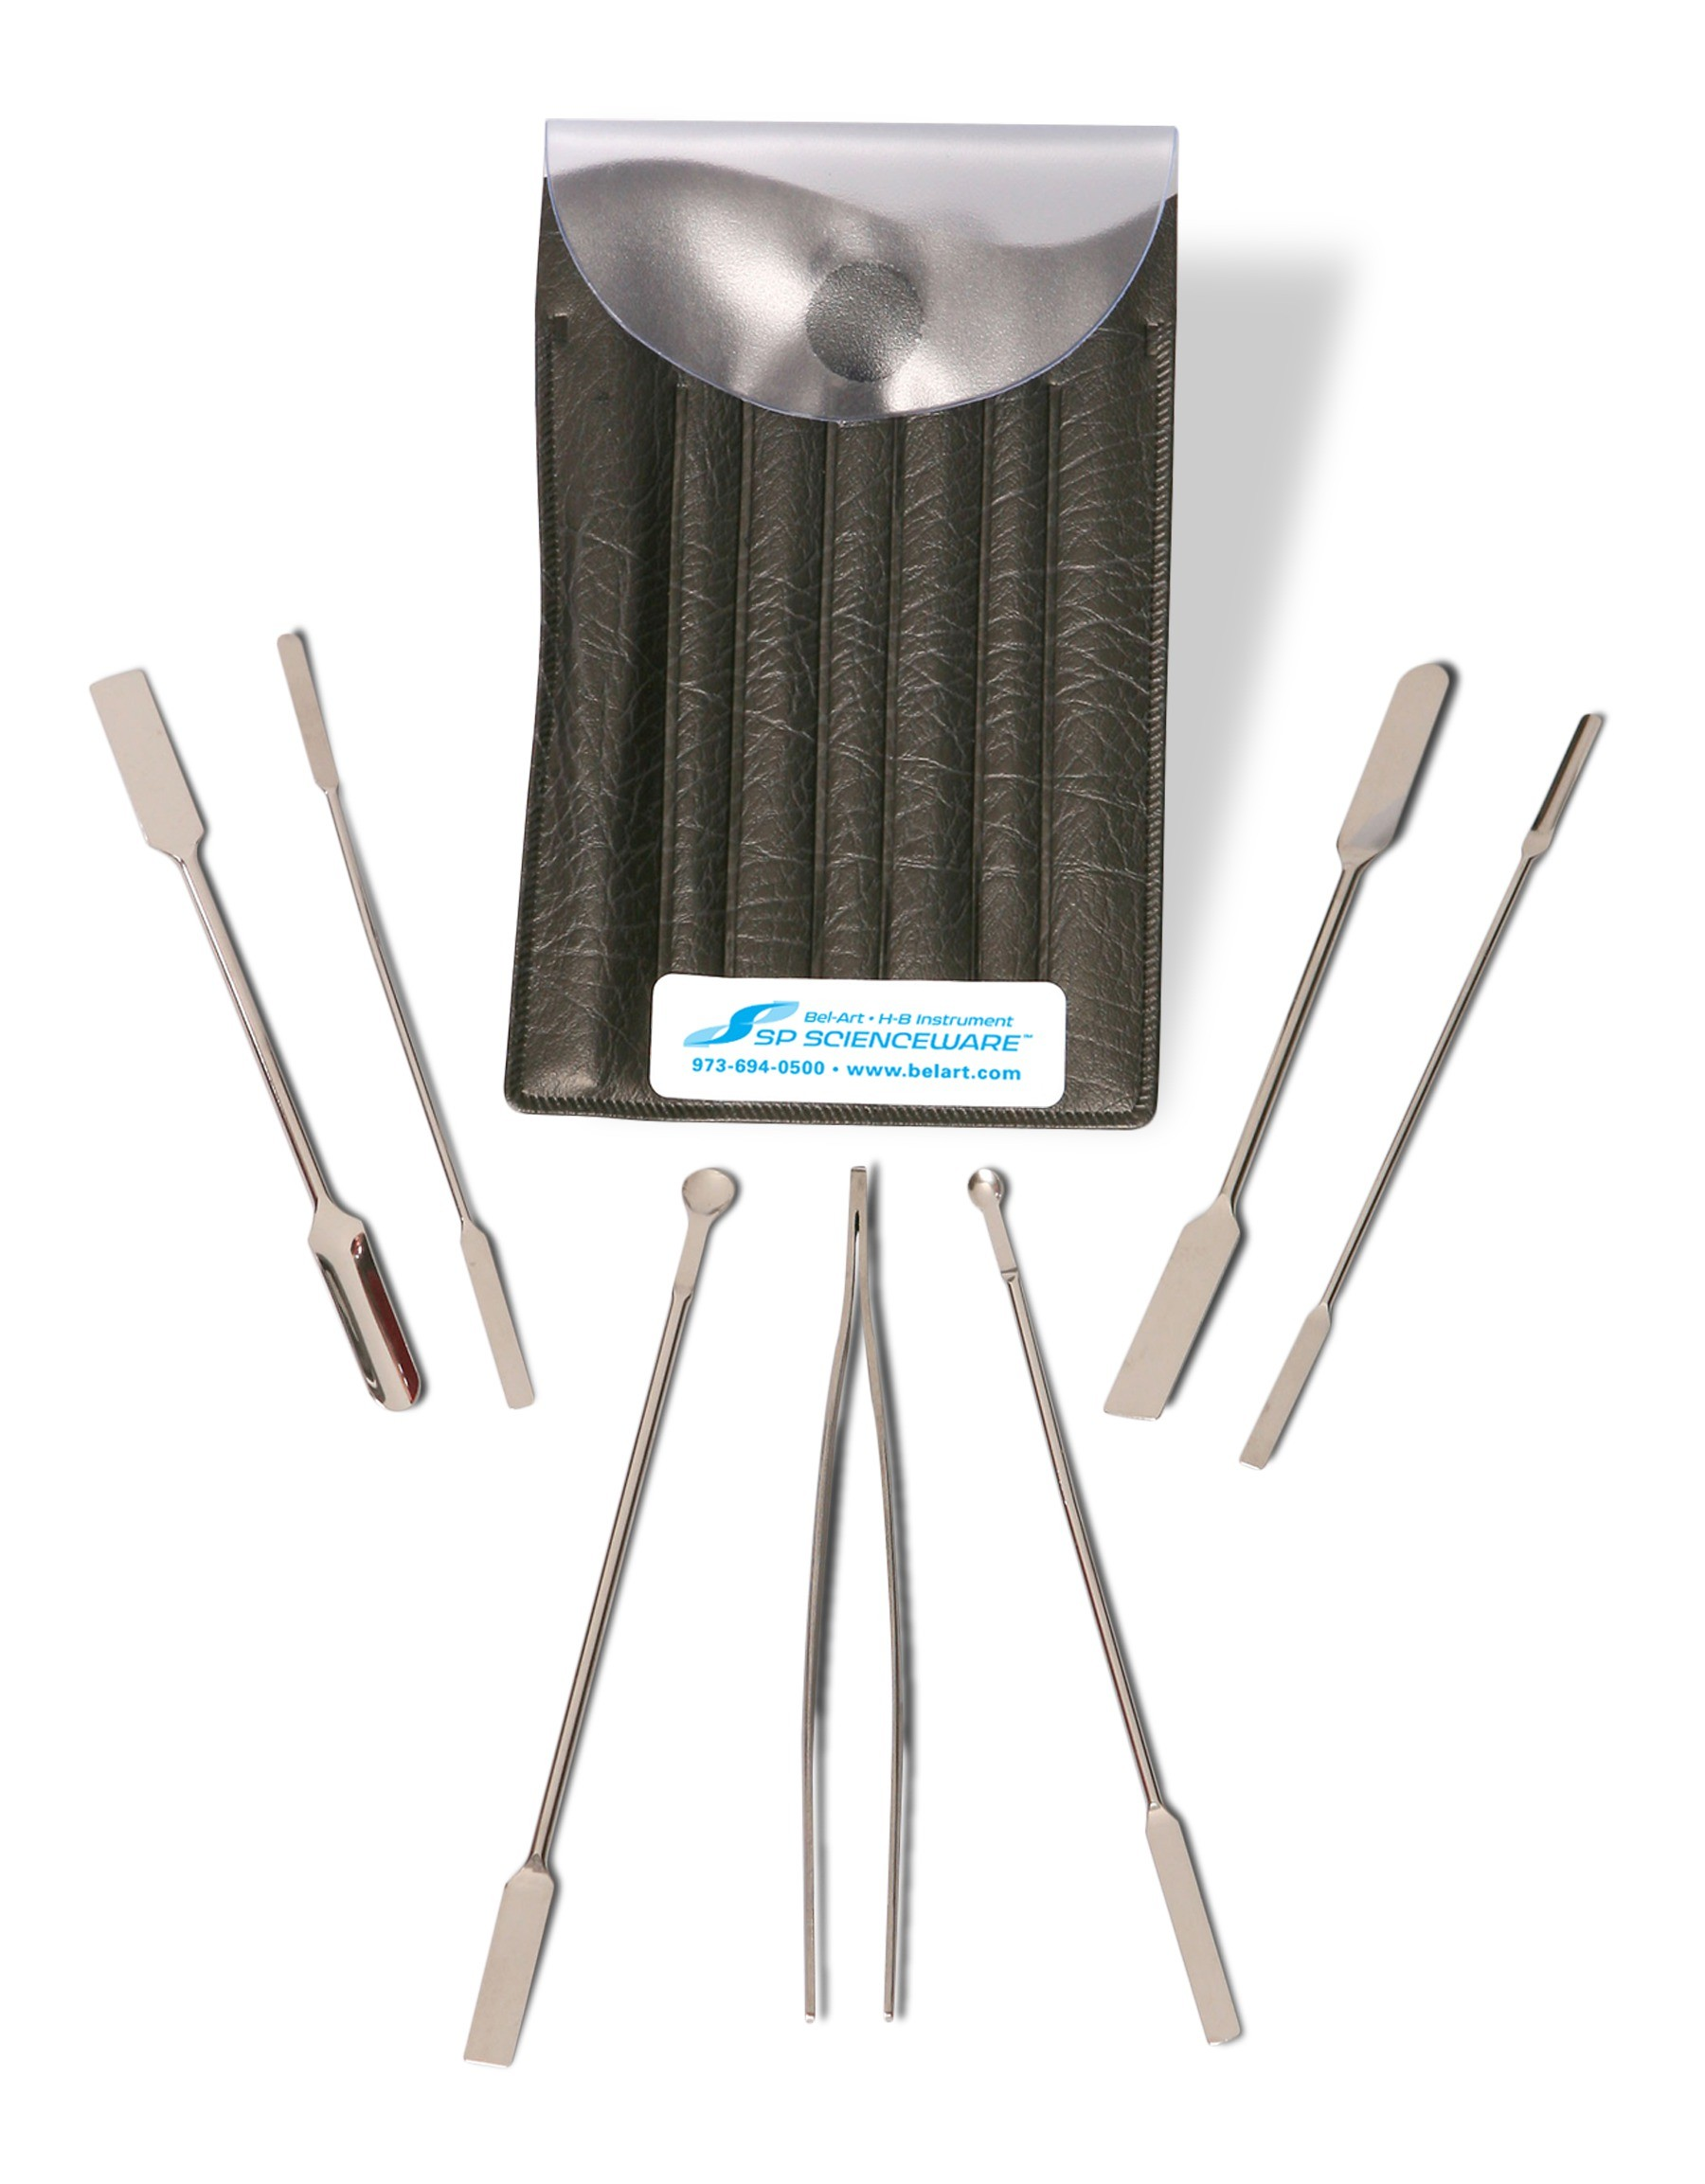 Micro Spoon and Spatula Weighing Set